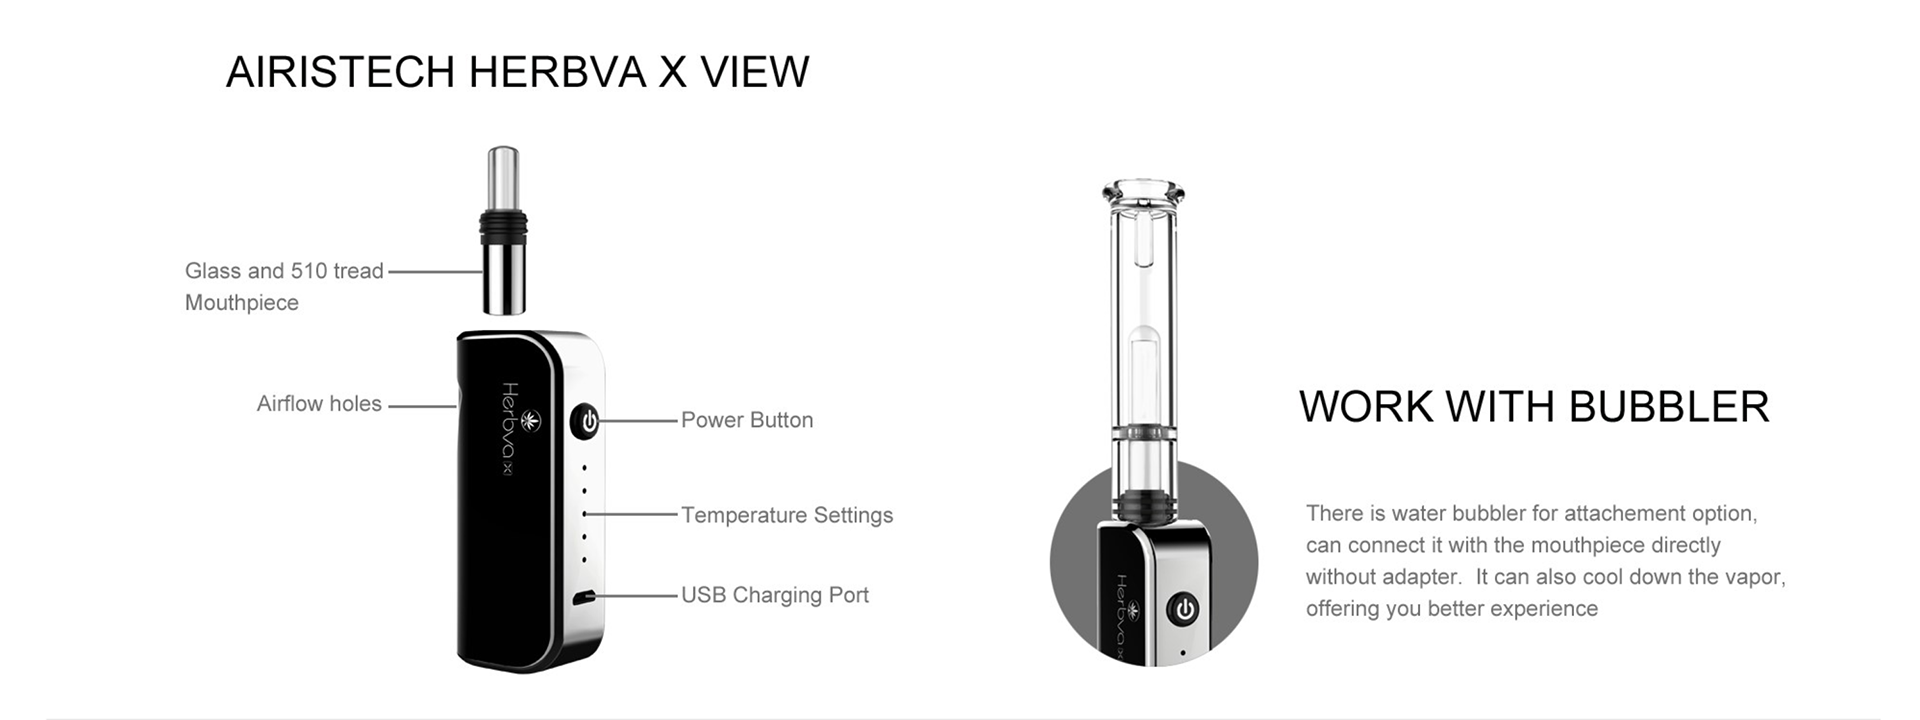 Airistech Herbva X 3-in-1 Vaporizer Glass mouthpiece, more healthier; universal to all bubblers without extra adapter.